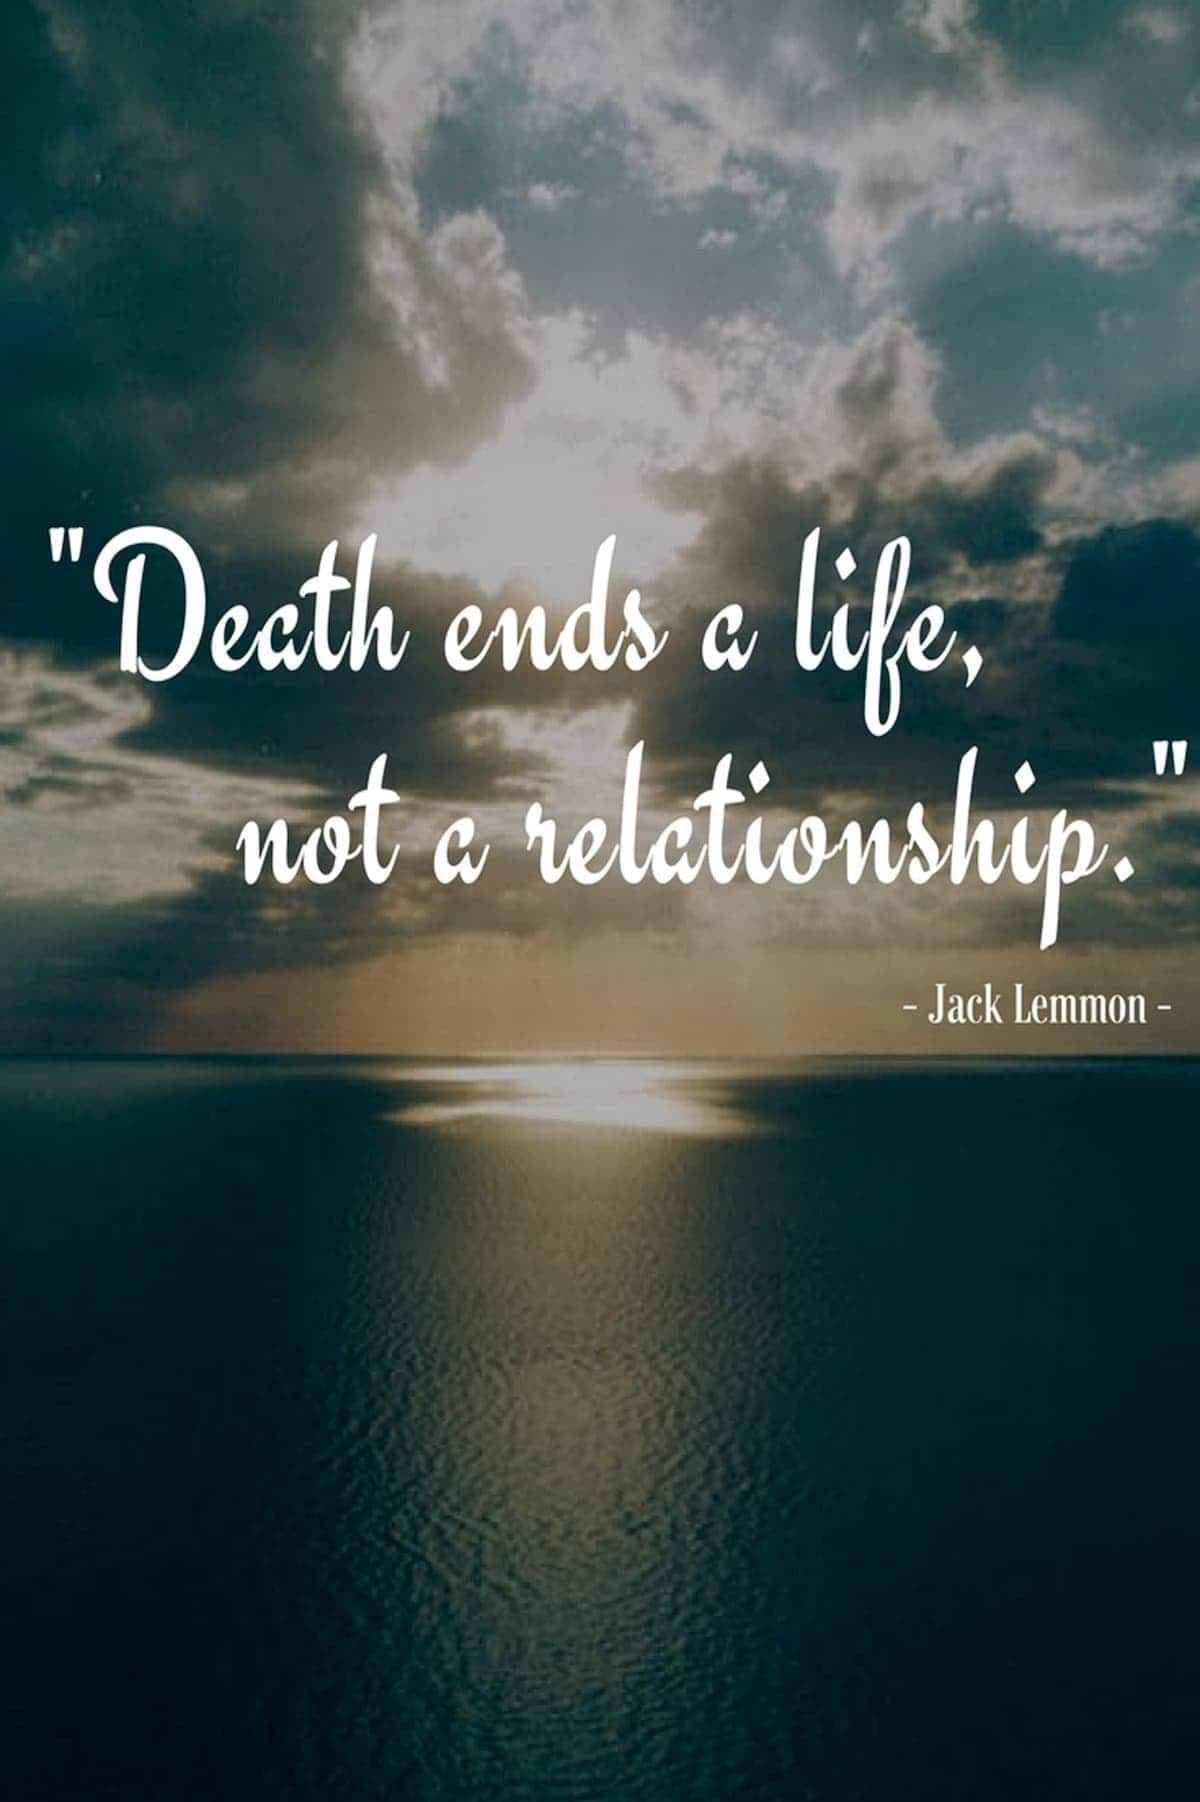 Painful quotes about death Comforting quotes about death Quotes about loss of a loved one